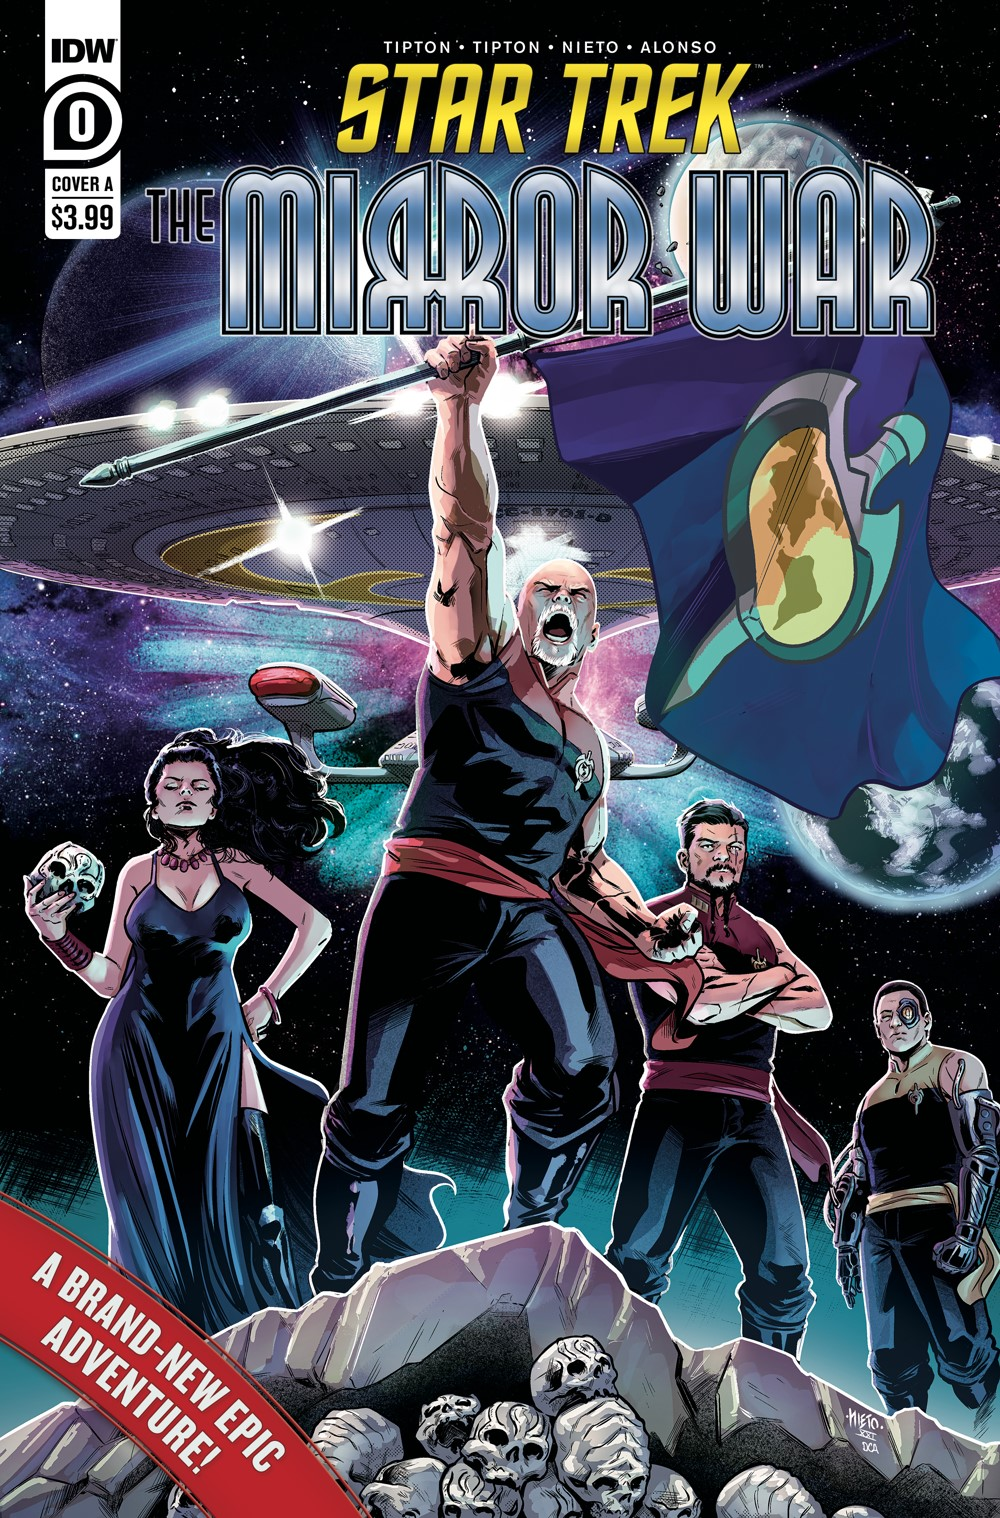 ST_TMW00-coverA ComicList: IDW Publishing New Releases for 09/08/2021